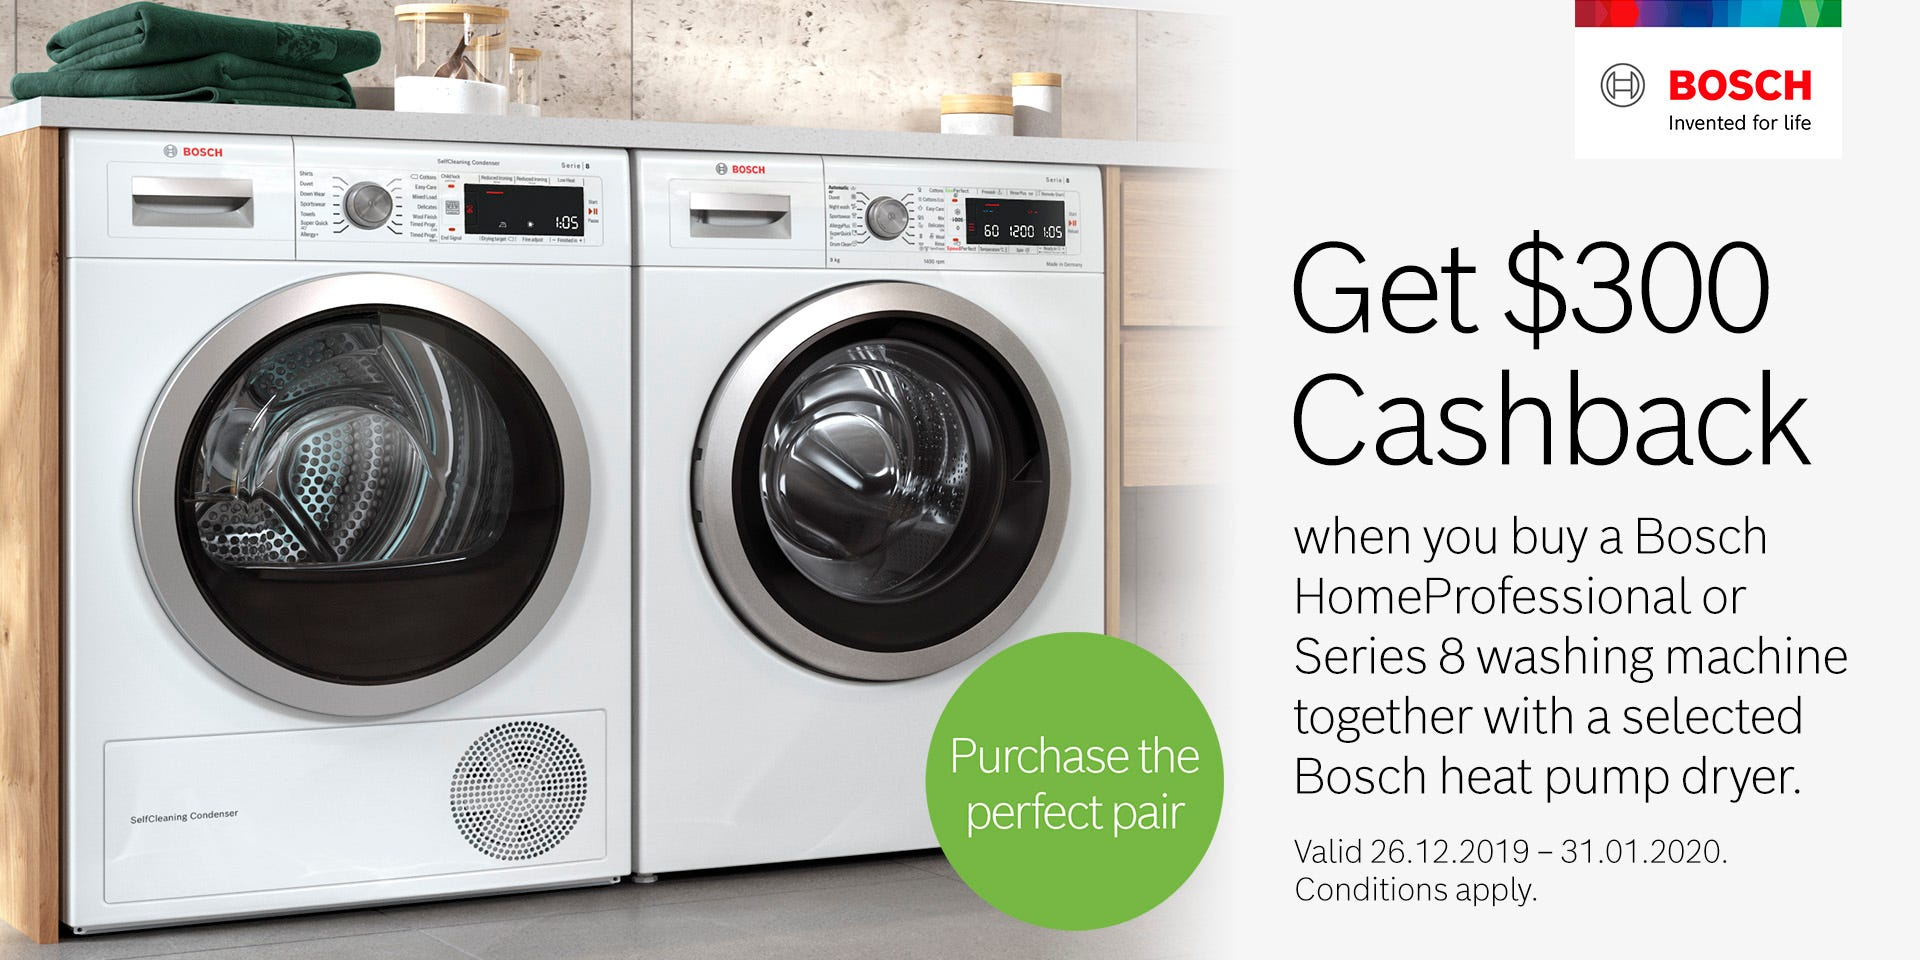 Receive $300 Cashback on selected Bosch Laundry. Conditions apply - ENDS 31/01/20